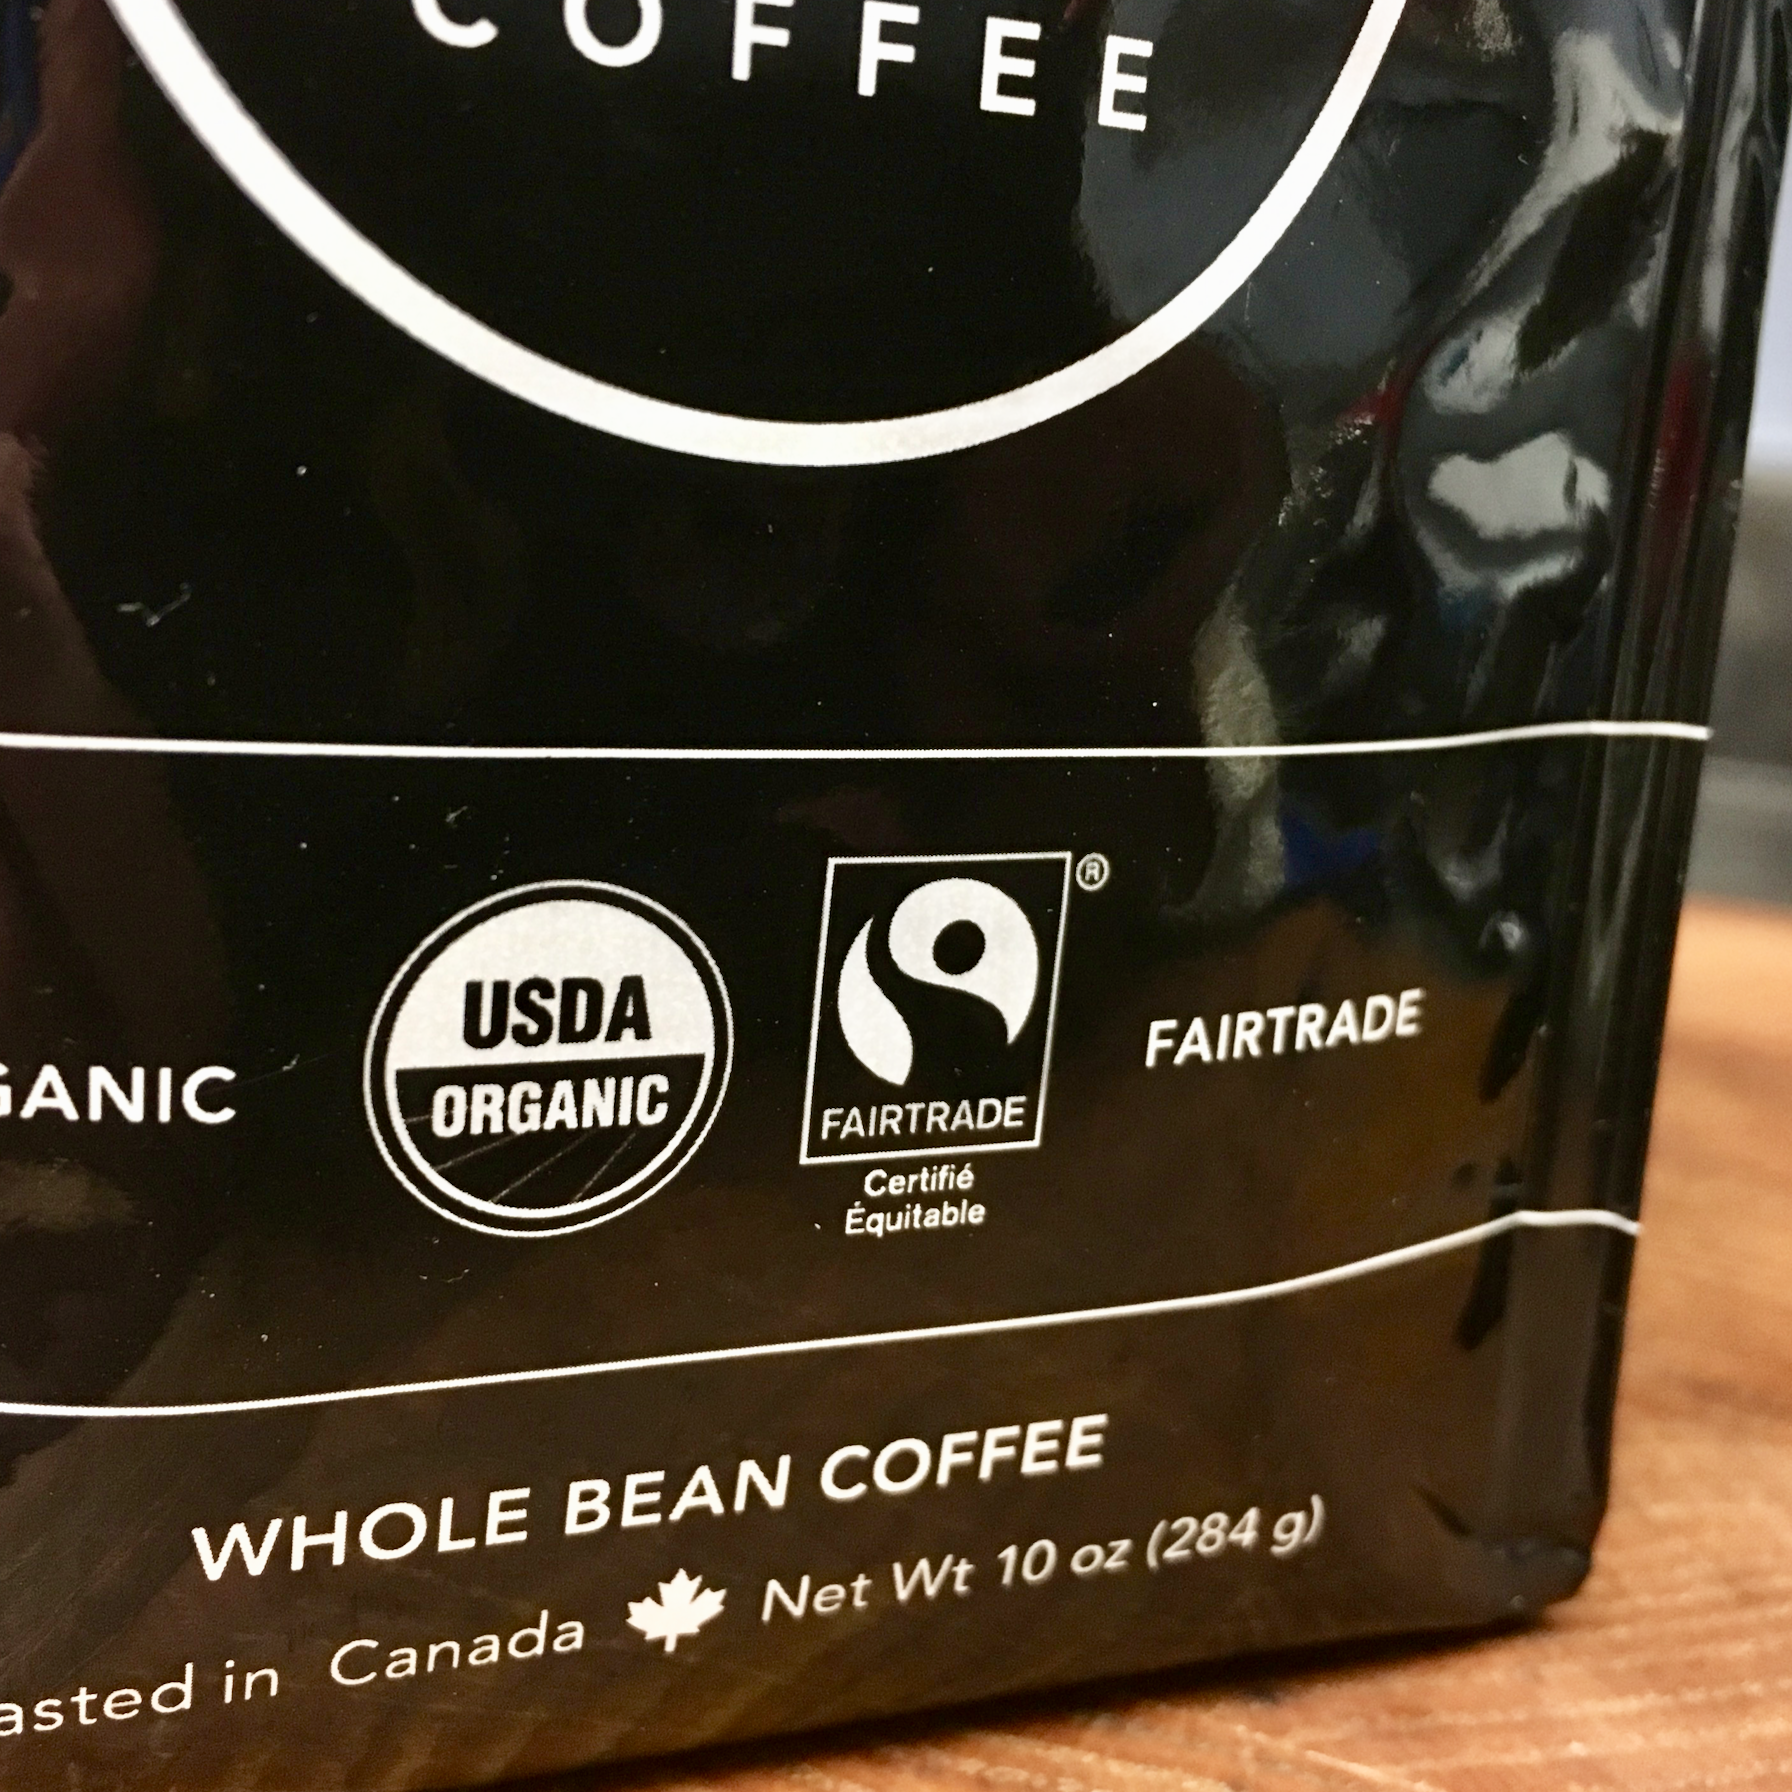 Justin's go-to blend has two of the labels discussed: USDA Organic and Fair Trade Certified. This bag of beans is the  Three Sisters Blend  from Kicking Horse Coffee in Vancouver, B.C.